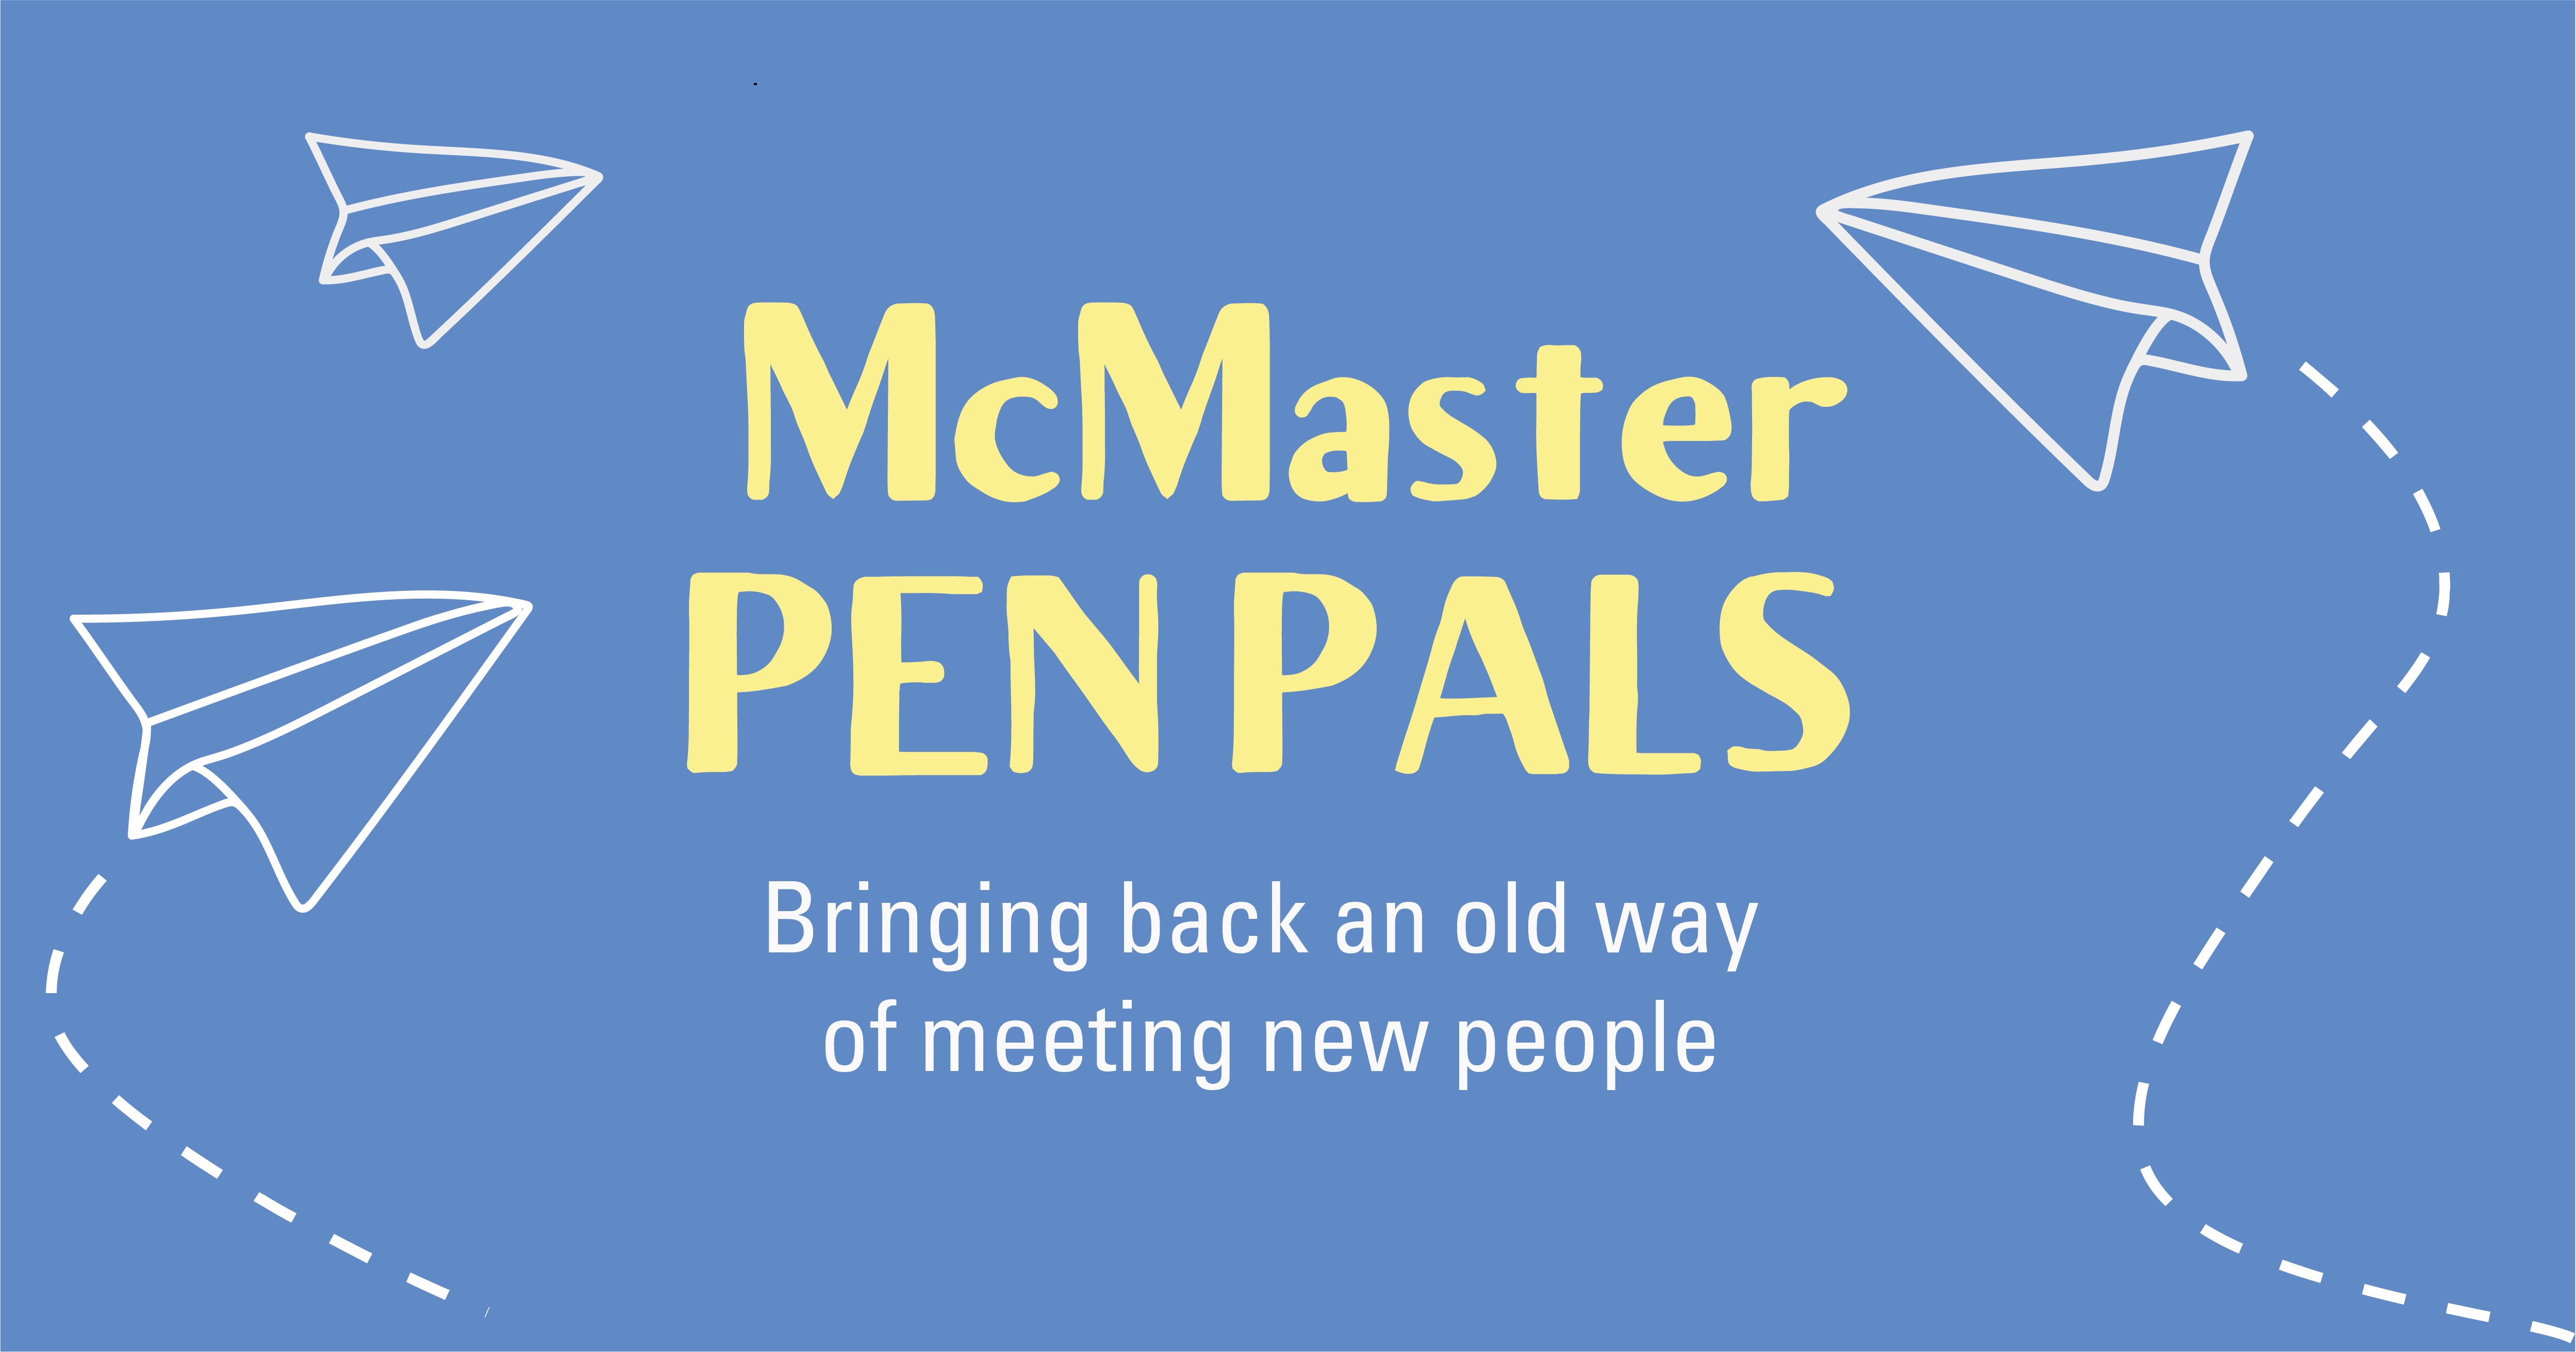 McMaster Pen pals, bringing back an old way of meeting new people